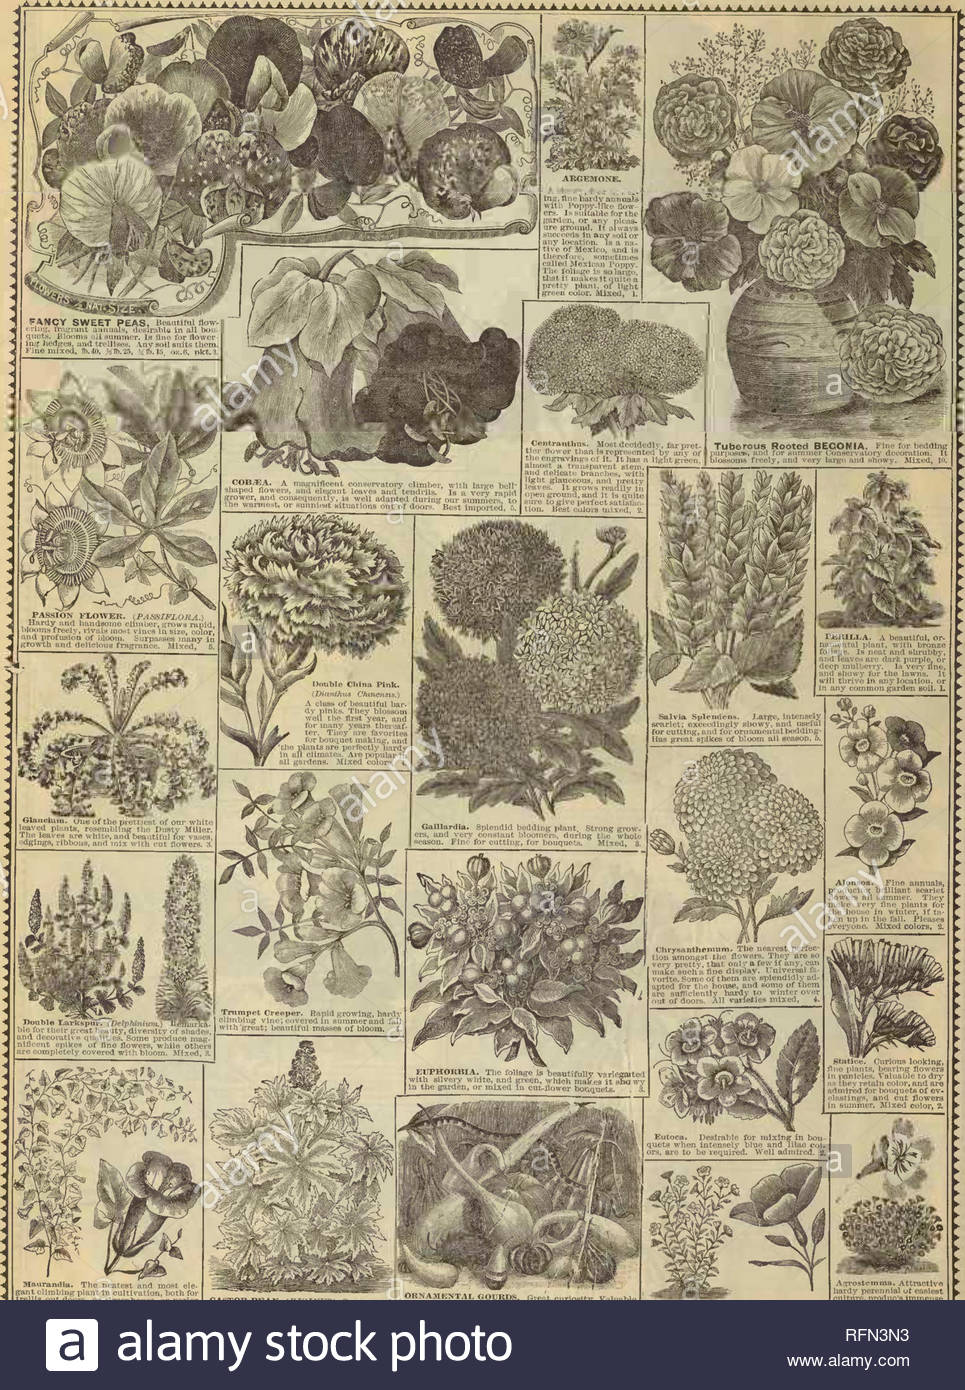 rh shumways illustrated garden guide nursery stock illinois rockford catalogs flowers seeds catalogs ve ables seeds catalogs maiiramlia the neateat and moat ele gant climljing plant in cultivation both foi trellis oxit doora or gi eenhousc or imrlor culture also for hanging baskets vases ampc elegant and various colored beauttfnl flow era producing a striking effect mixed 5 castor bean ricinu8 ornamental csferine jhlivi w1 t cur oity valuable foliage 9tatclygi ovthshowftuitjnves a arersil7tmsnvl uatlon au largest fancy var RFN3N3